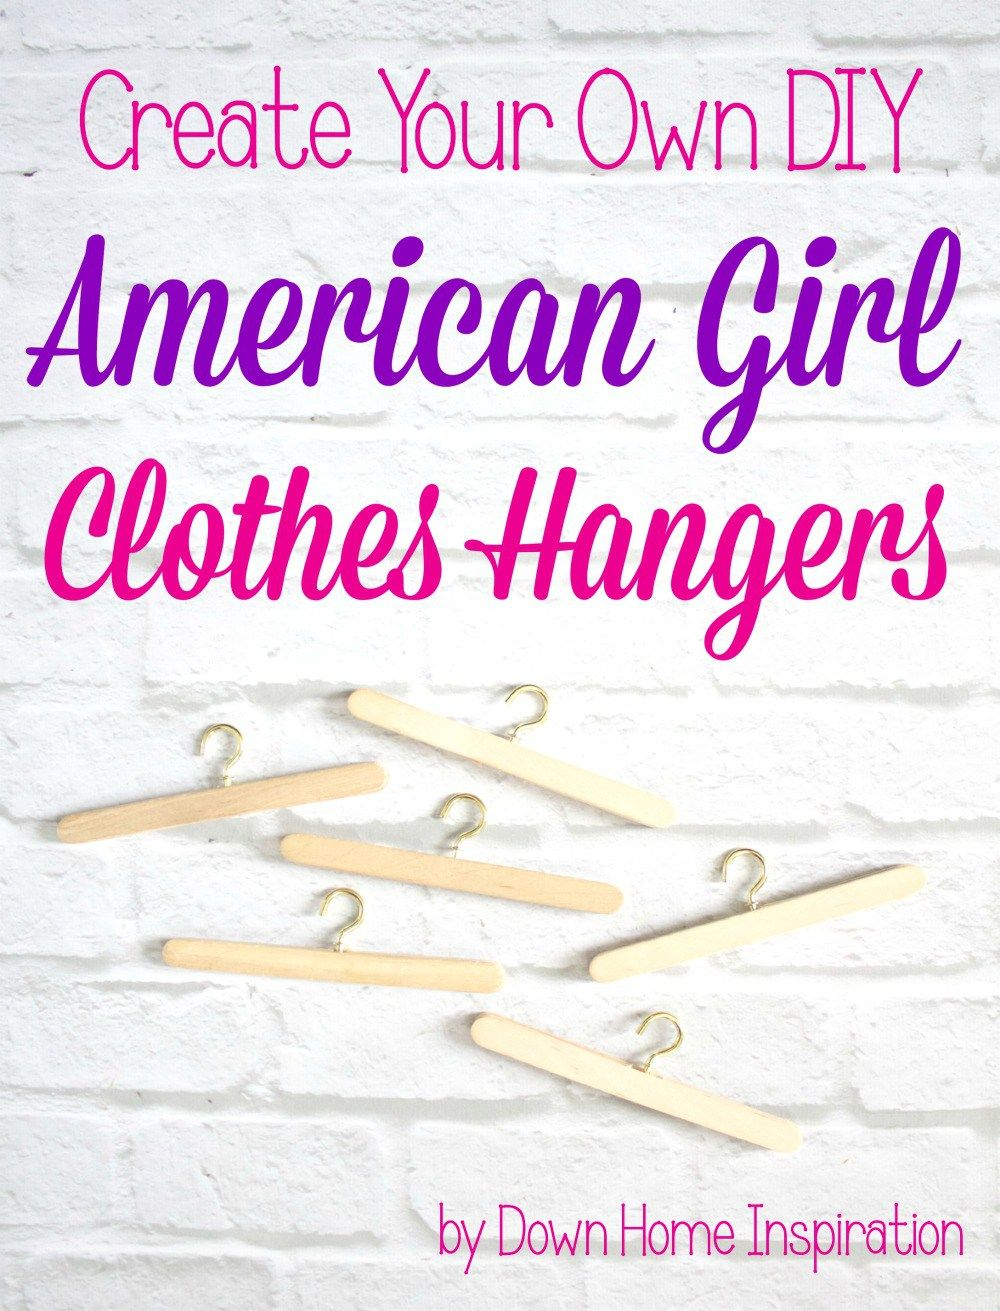 Create Your Own DIY American Girl Clothes Hangers #americangirlhouse